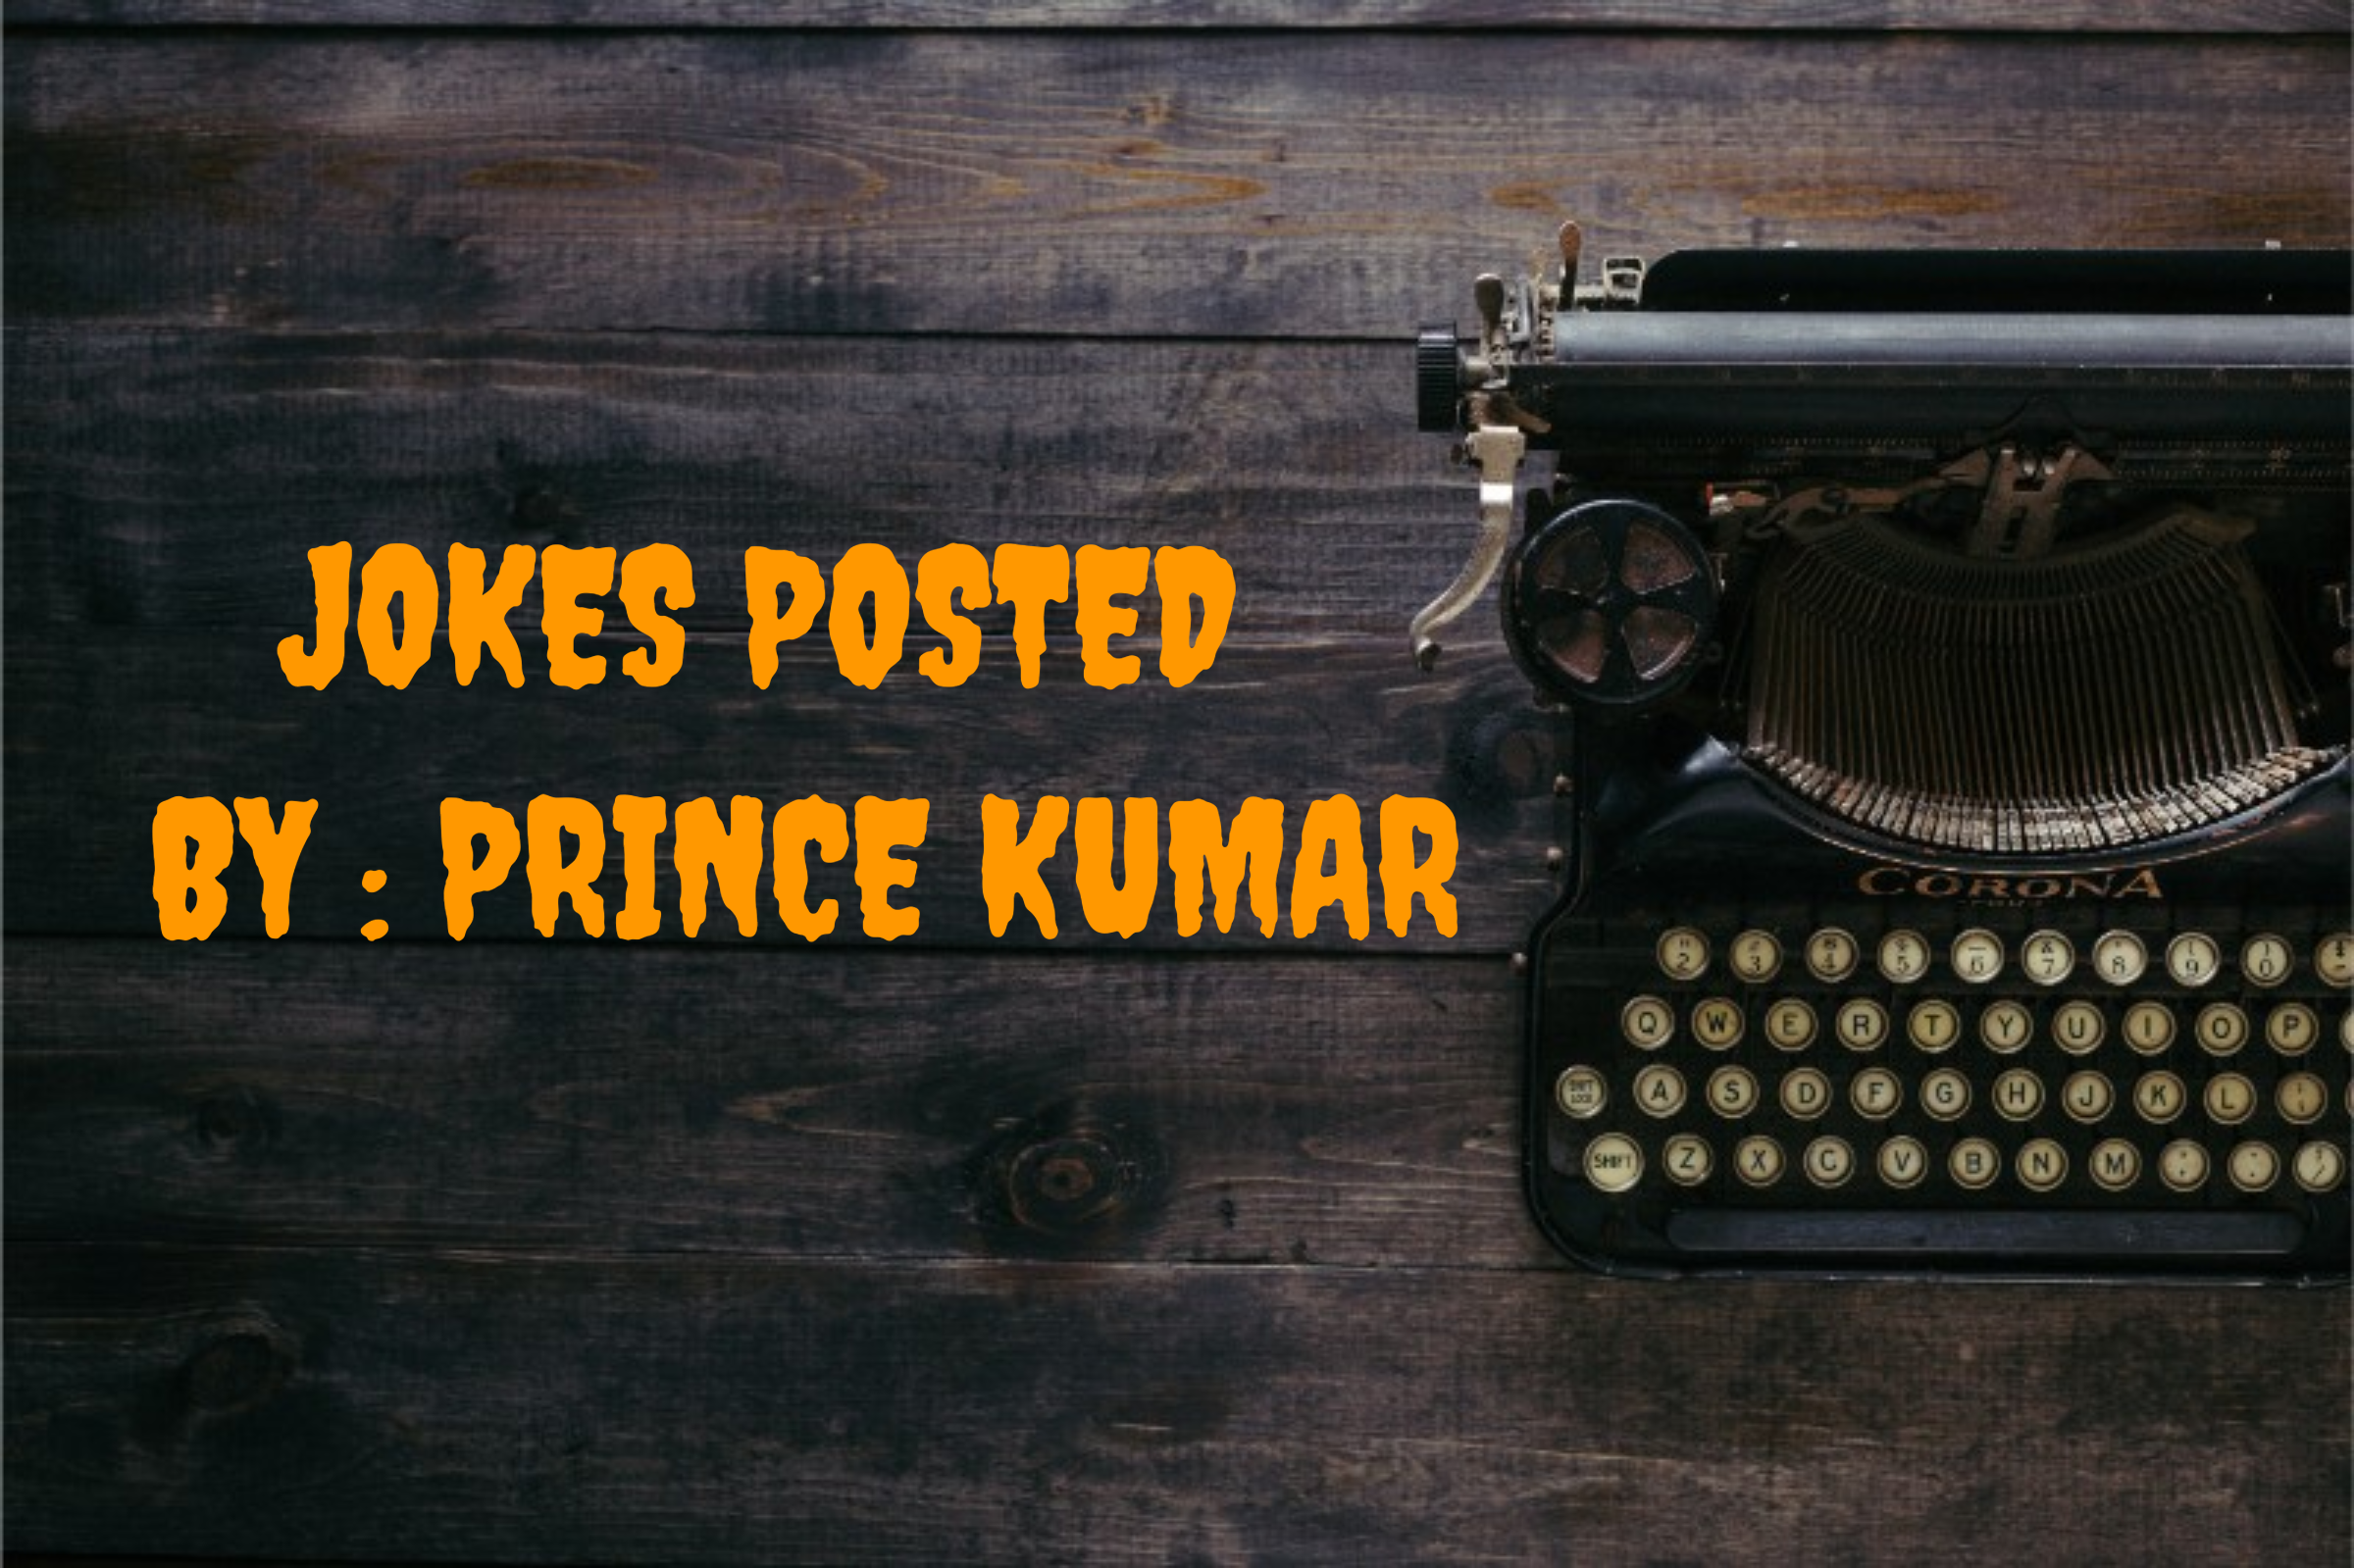 1. JOKES POSTED BY PRINCE KUMAR